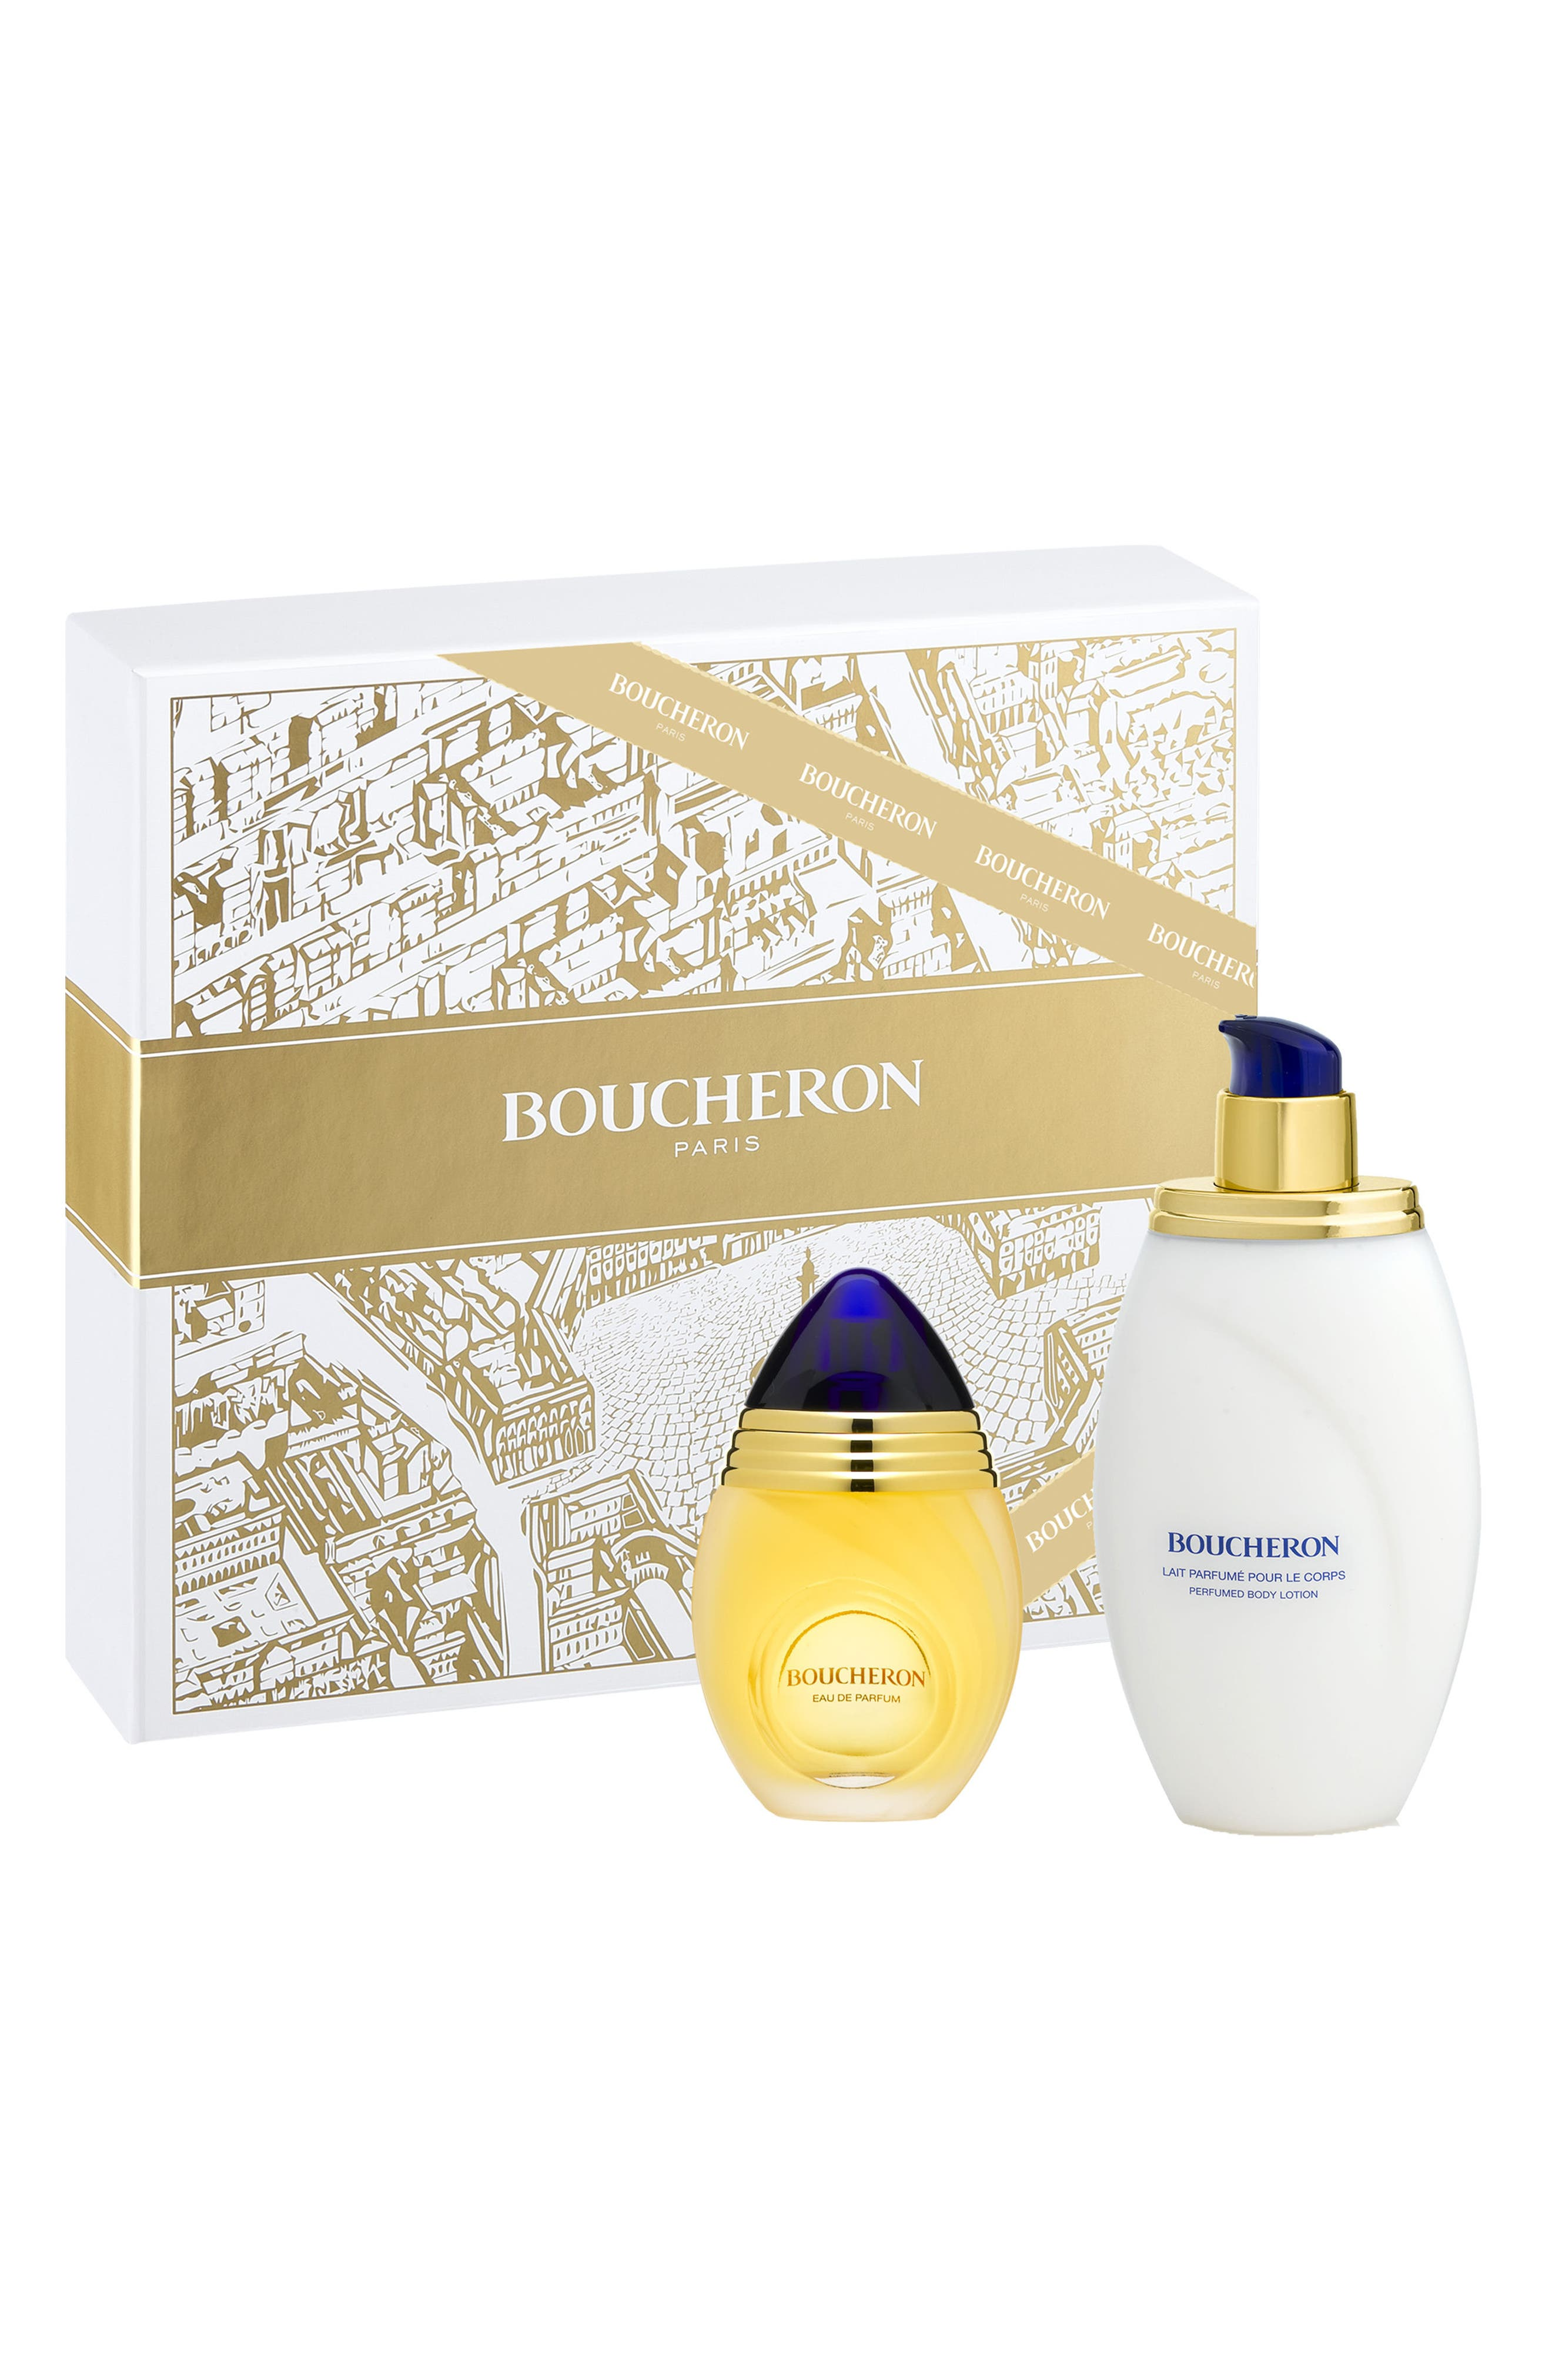 Boucheron Eau de Parfum Set ($195 Value)